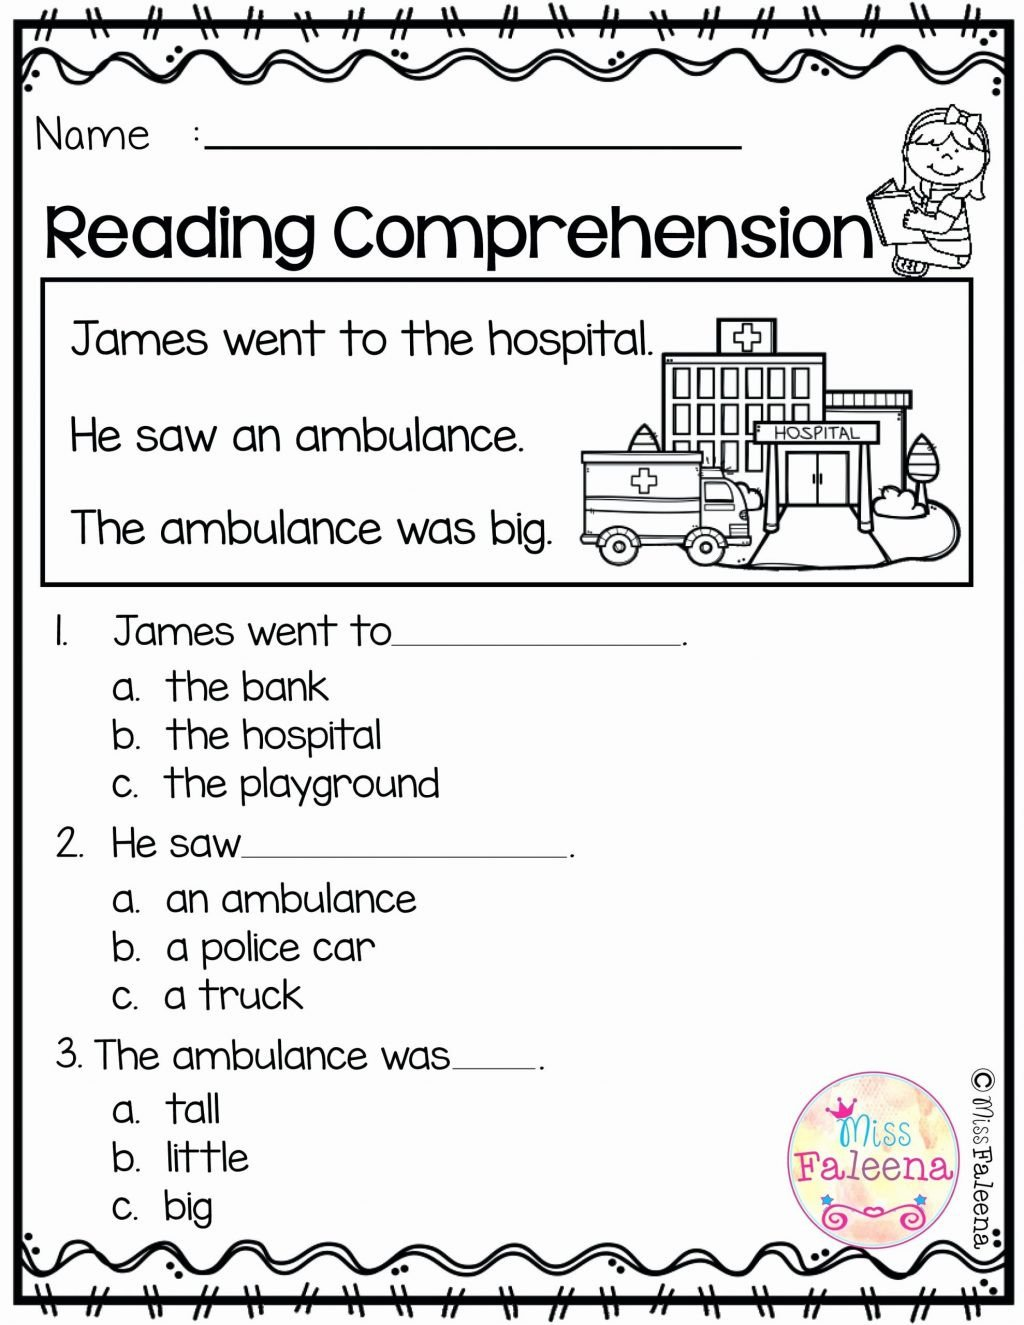 literacy worksheets for kindergarten freeable reading worksheet mat readiness preschoolers english and first grade prehension scaled splendid 1024x1325